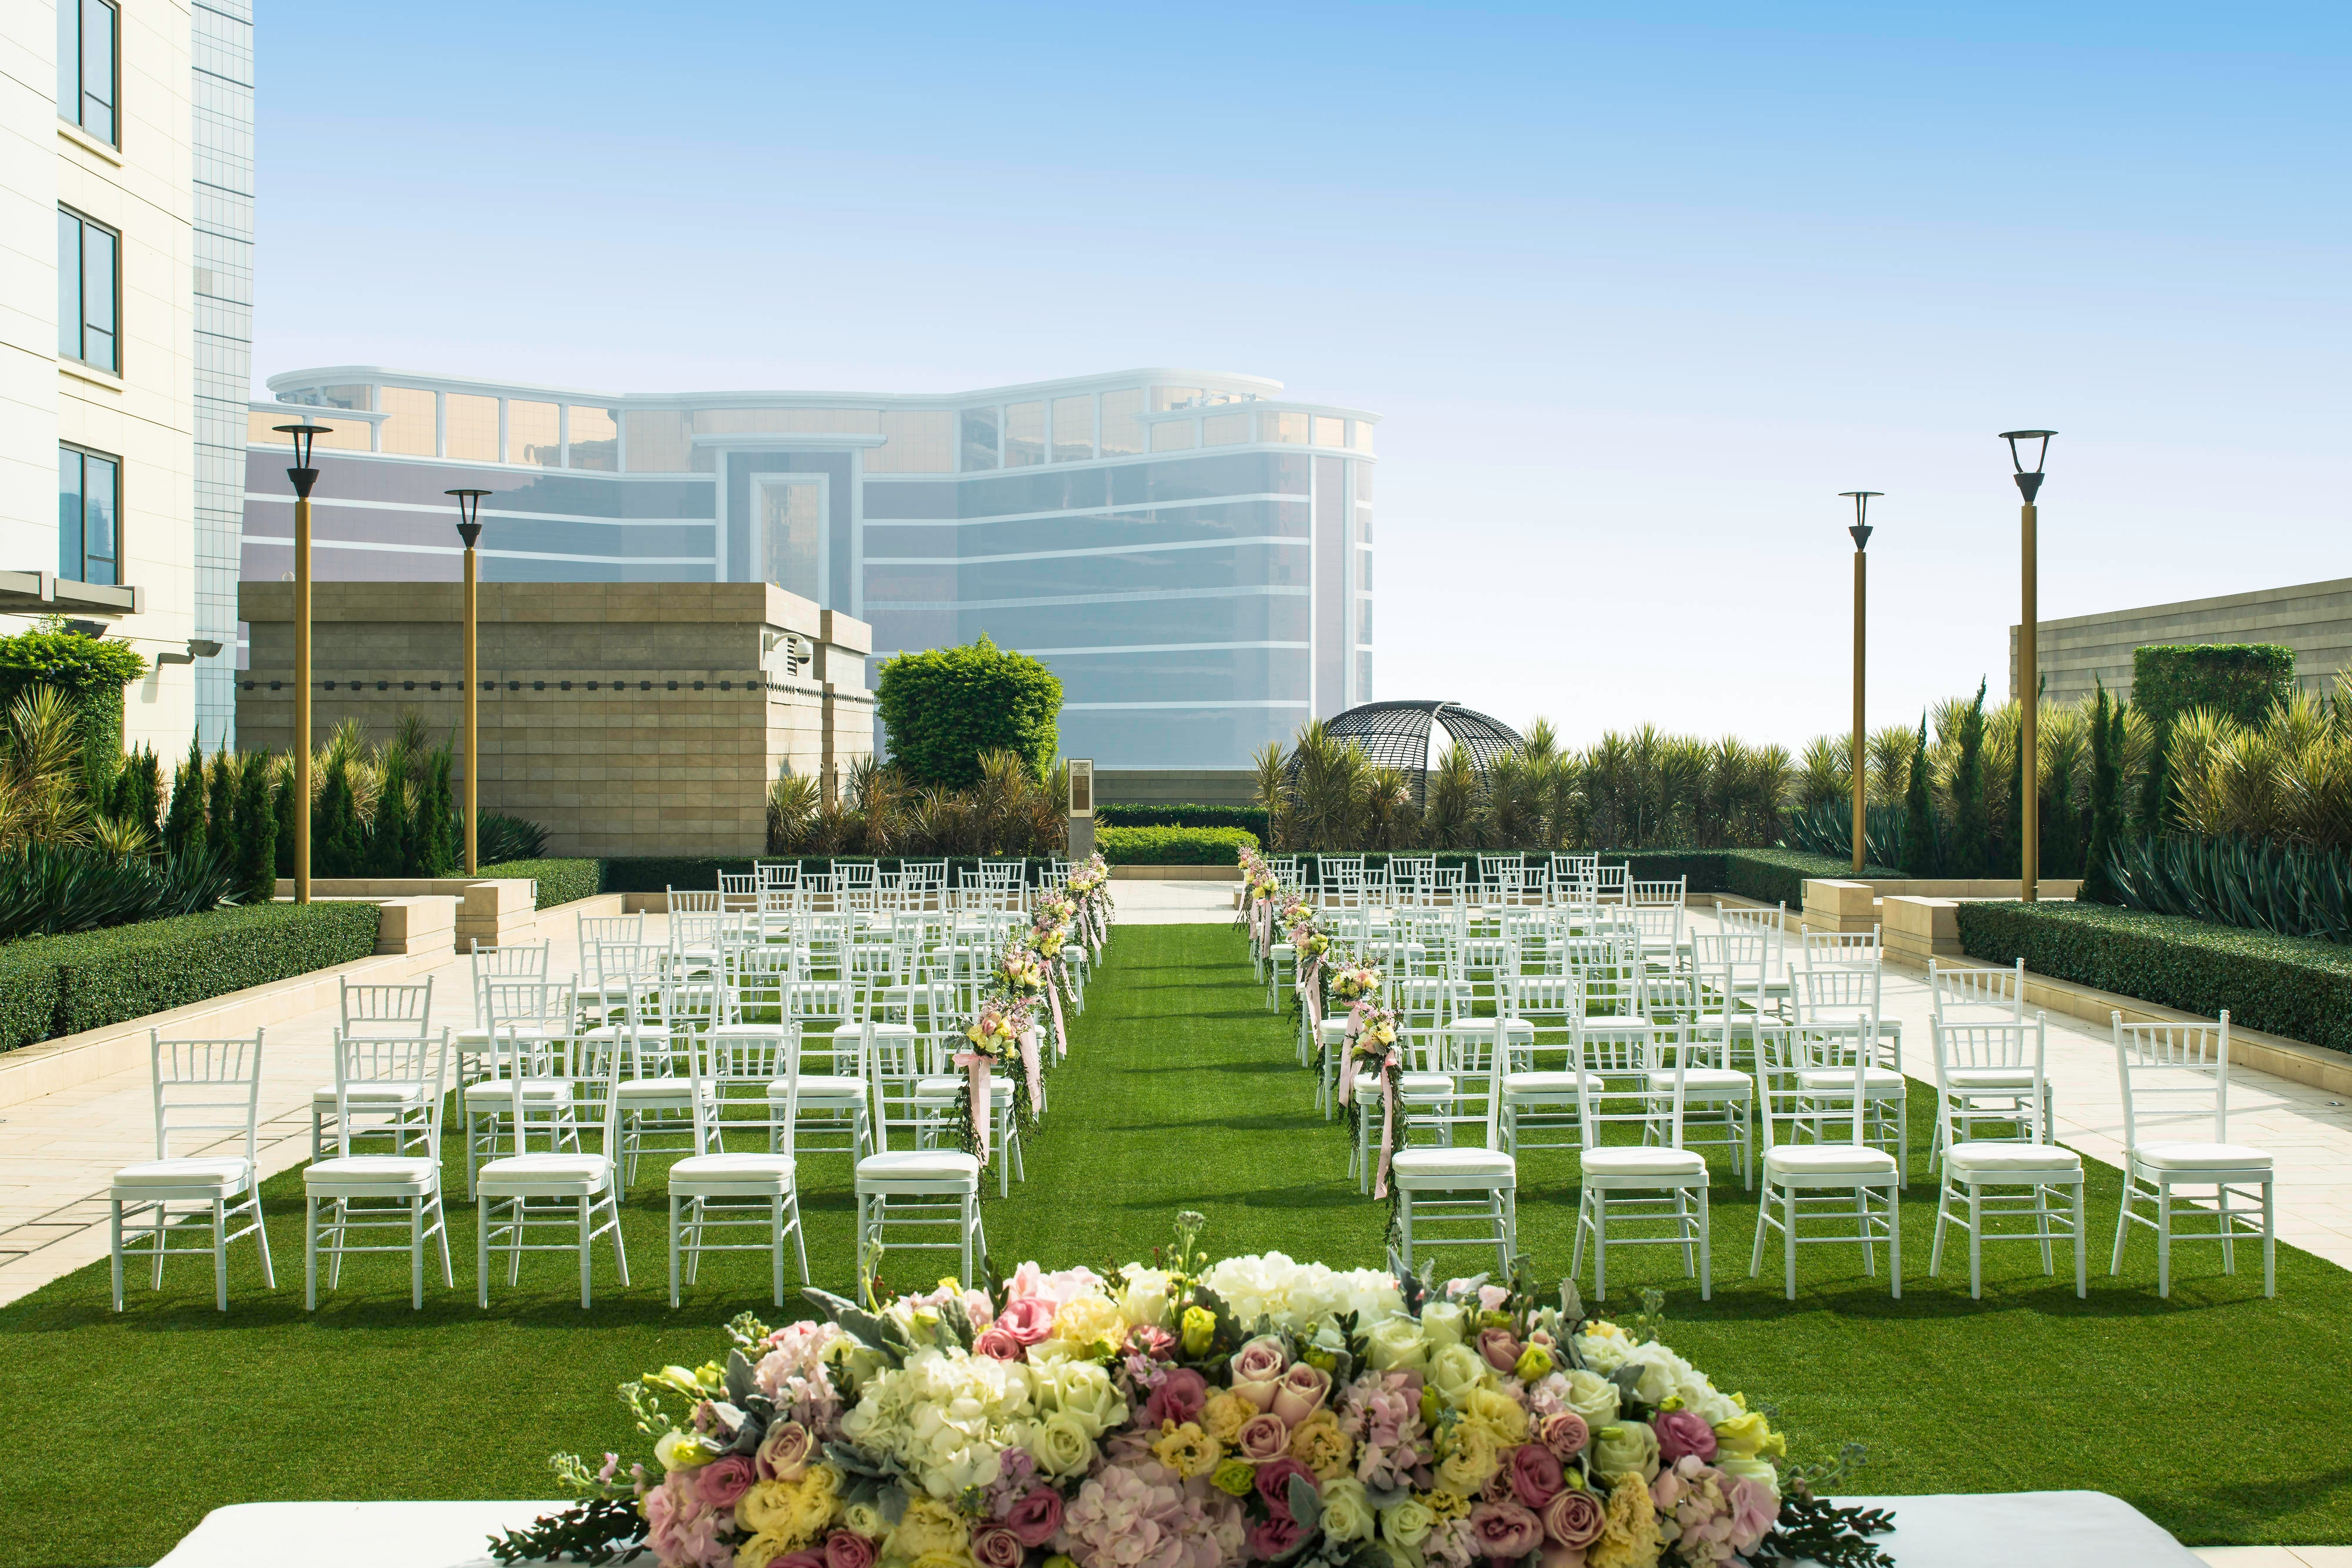 The Lawn Outdoor Wedding Reception